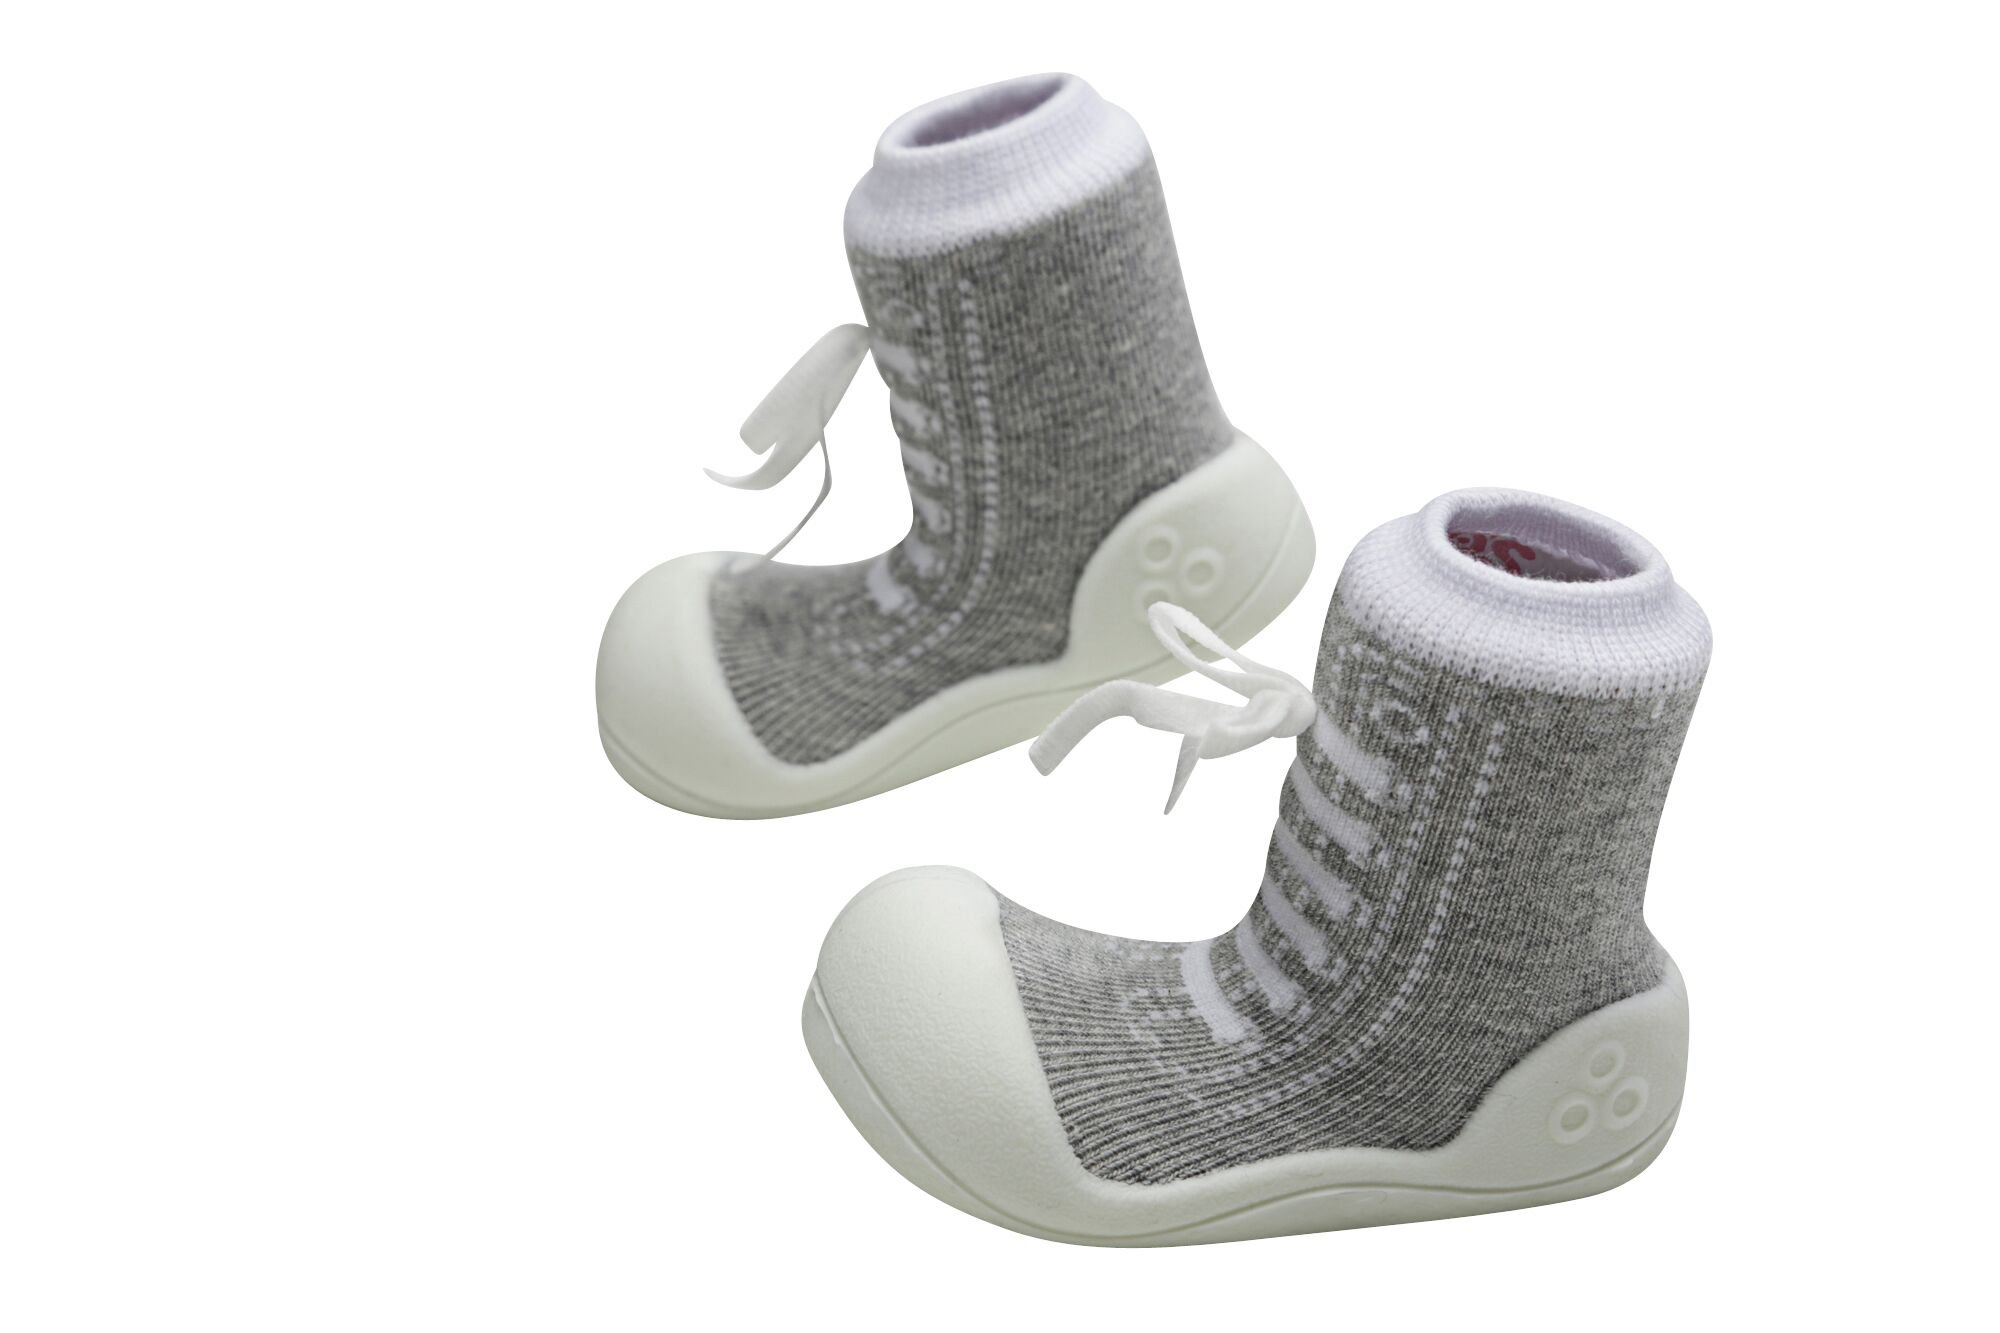 Attipas Best First Walker Shoes Baby Cotton Socks Shoes Non Toxic Safe Great Baby Registry Gifts (US Toddler 4.5, Sneakers Grey) by Attipas (Image #4)